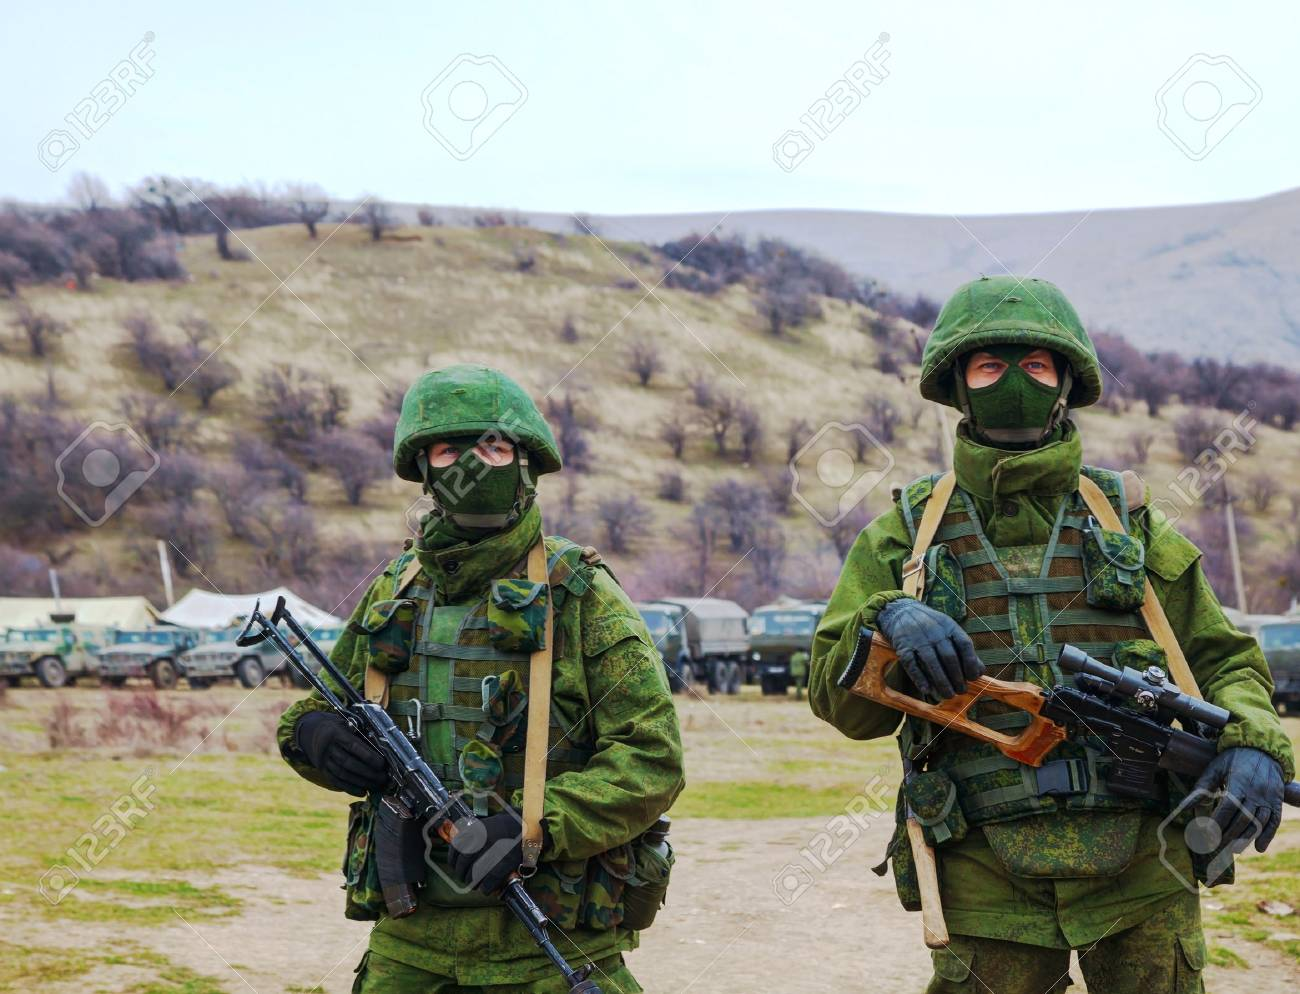 PEREVALNE, UKRAINE - MARCH 4  Russian soldiers on March 4, 2014 in Perevalne, Crimea, Ukraine  On February 28, 2014 Russian military forces invaded Crimea peninsula  Stock Photo - 26410681